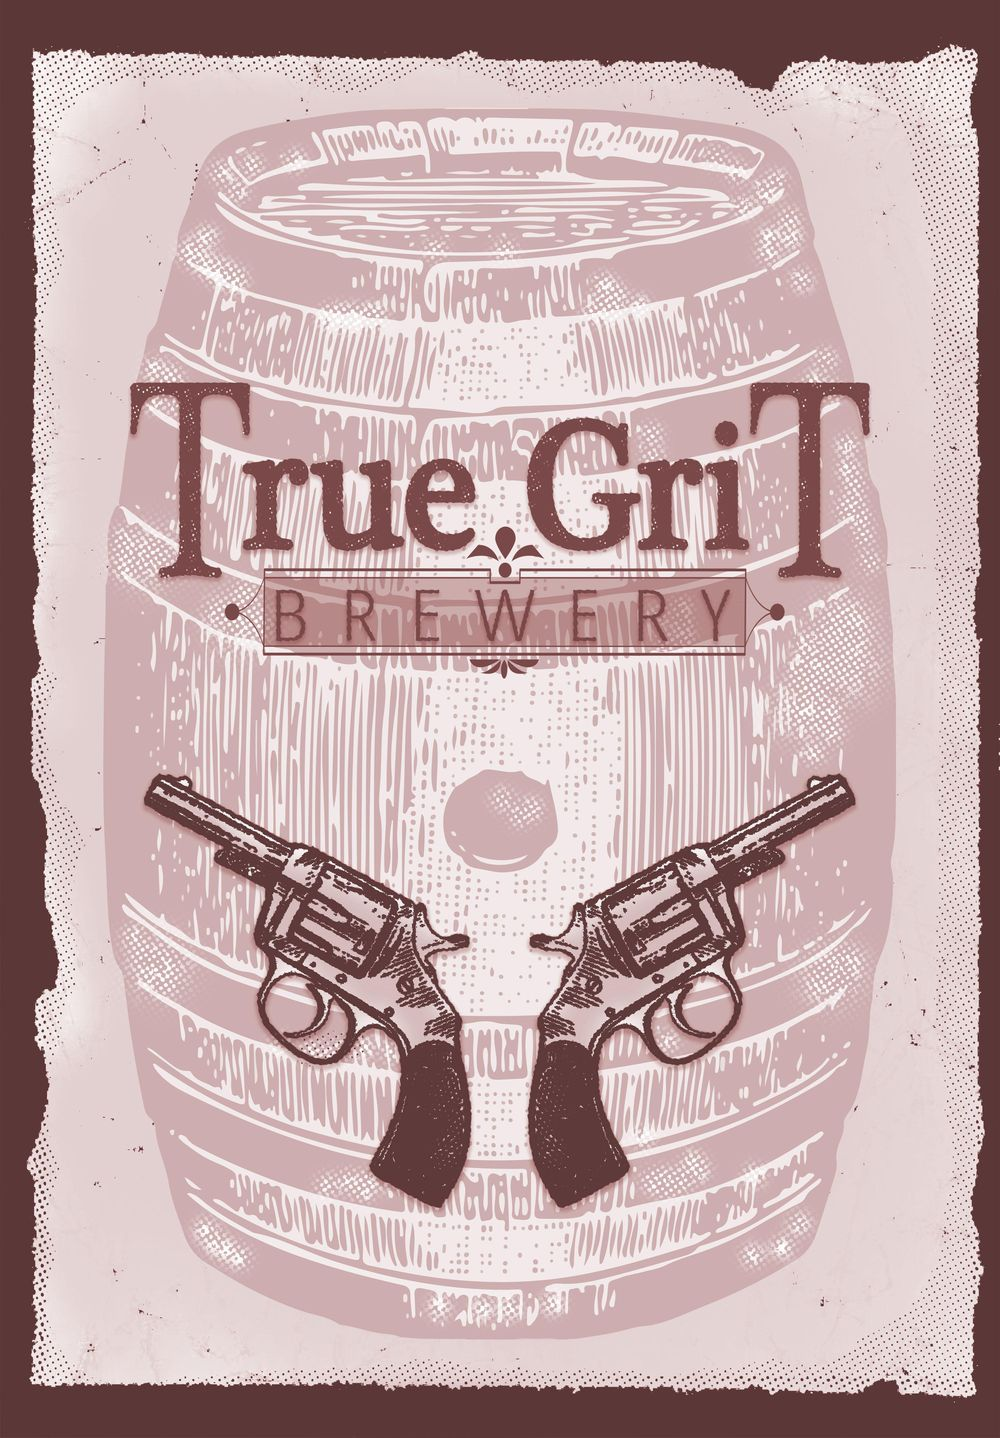 True Grit Practice Poster - image 2 - student project